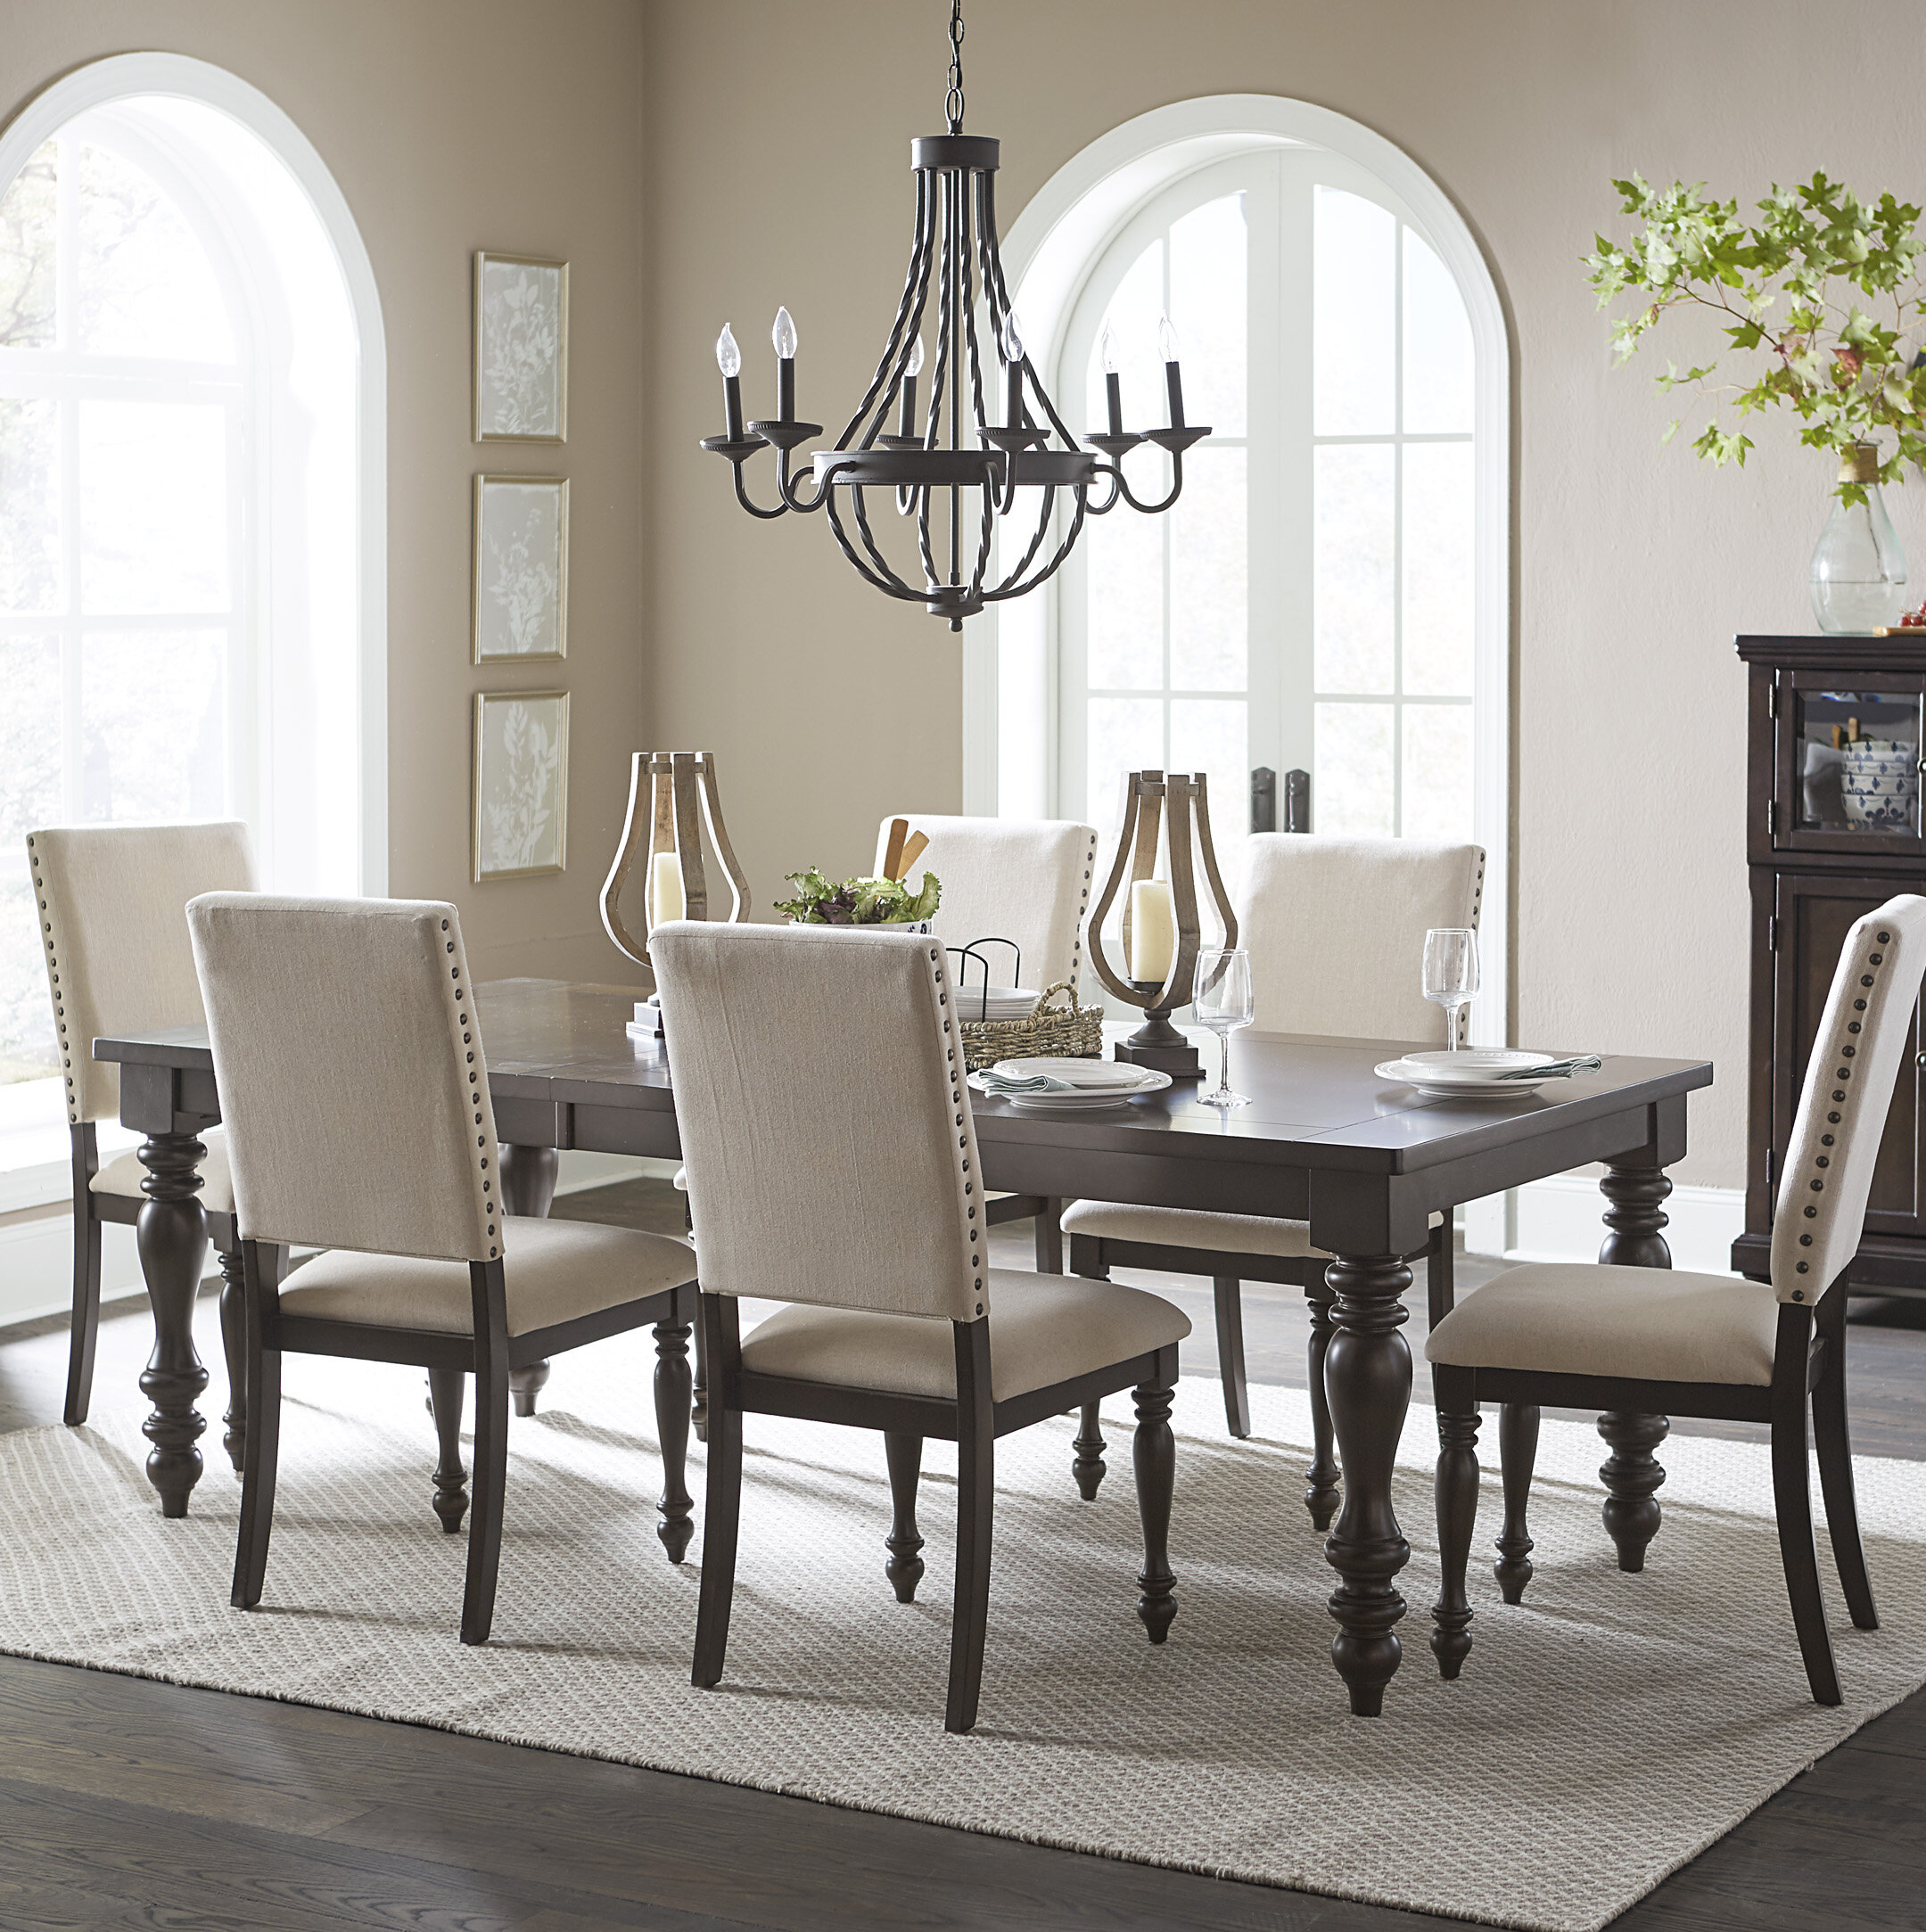 Seats 9 Kitchen & Dining Room Sets & Tables You'll Love in 9 ...